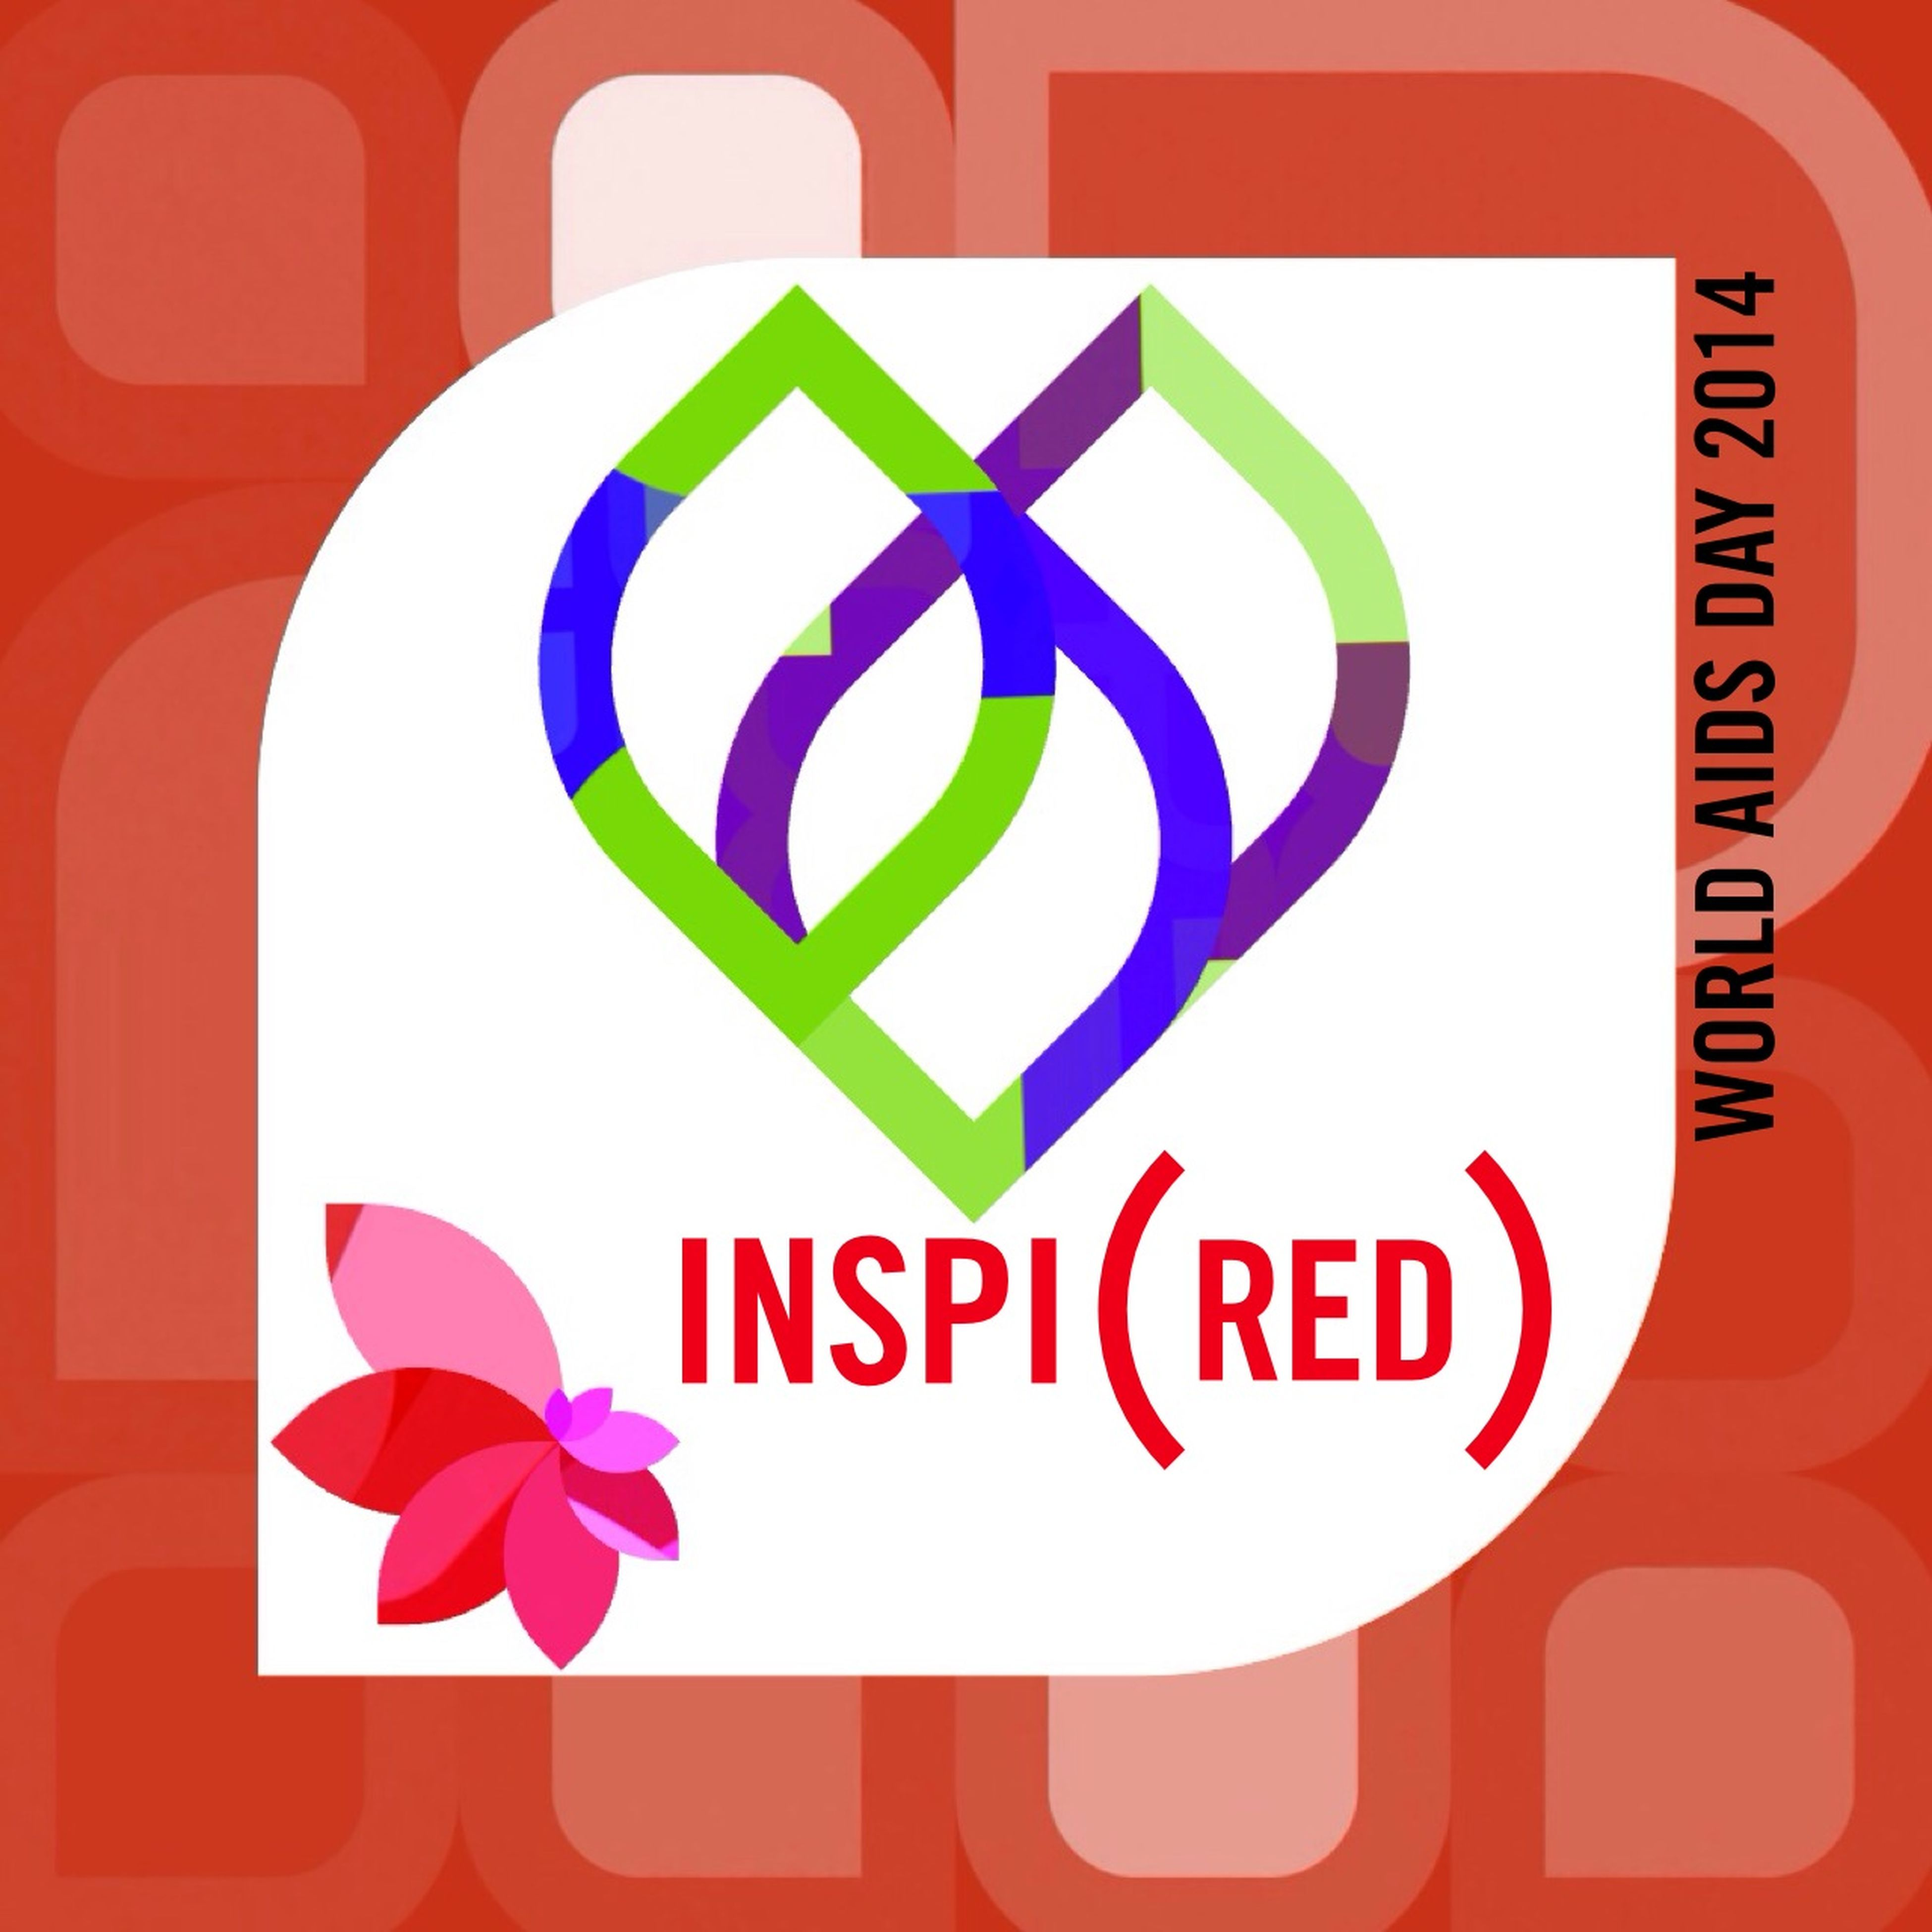 Aids Sidaction Lutte Sida Overapp Overedit Overedited Stop la maladie? Red Overed